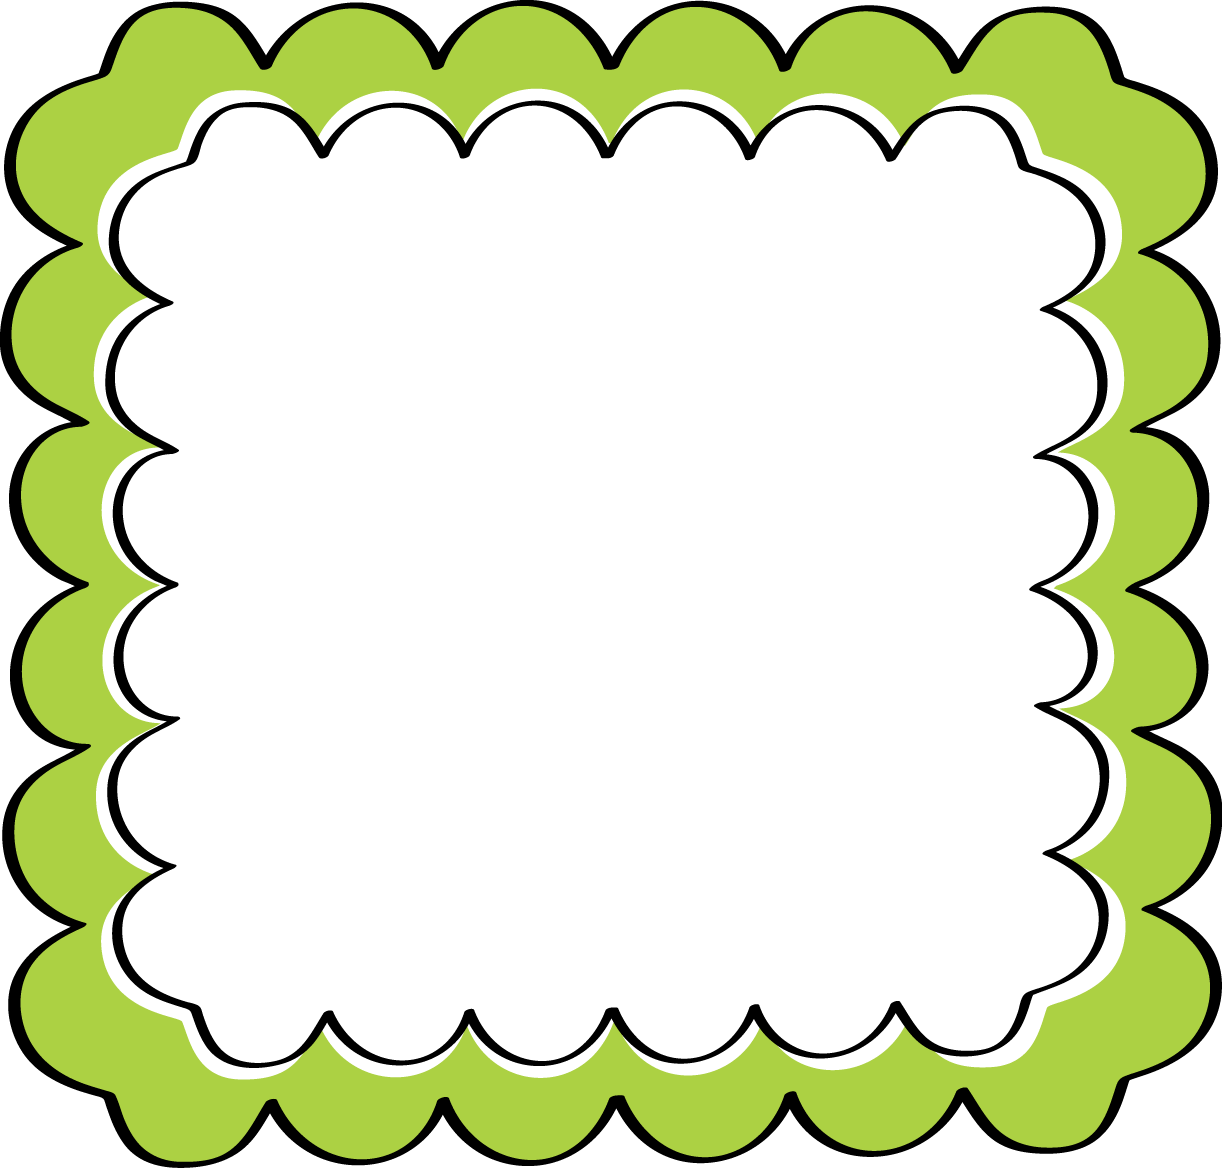 School clipart free borders image transparent school theme border clipart | Green Scalloped Frame - Free Clip Art ... image transparent